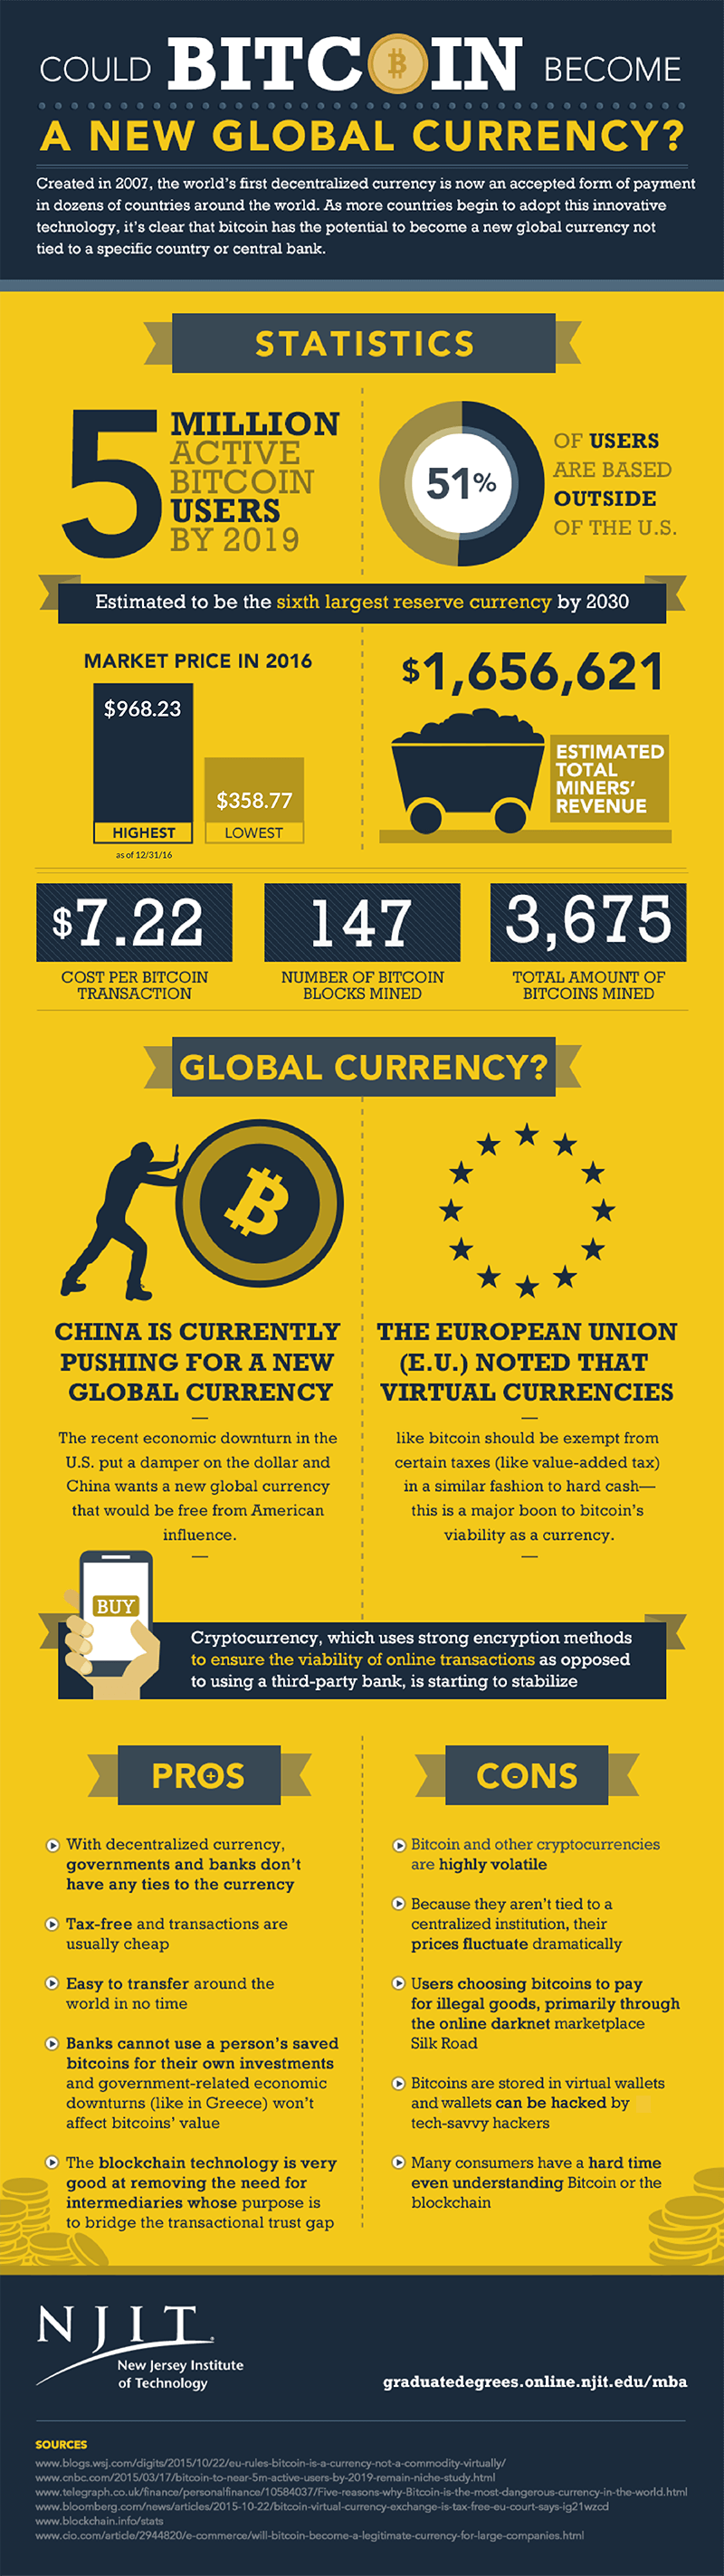 Is the World Ready for a New Global Currency? Evaluating Bitcoin - Infographic